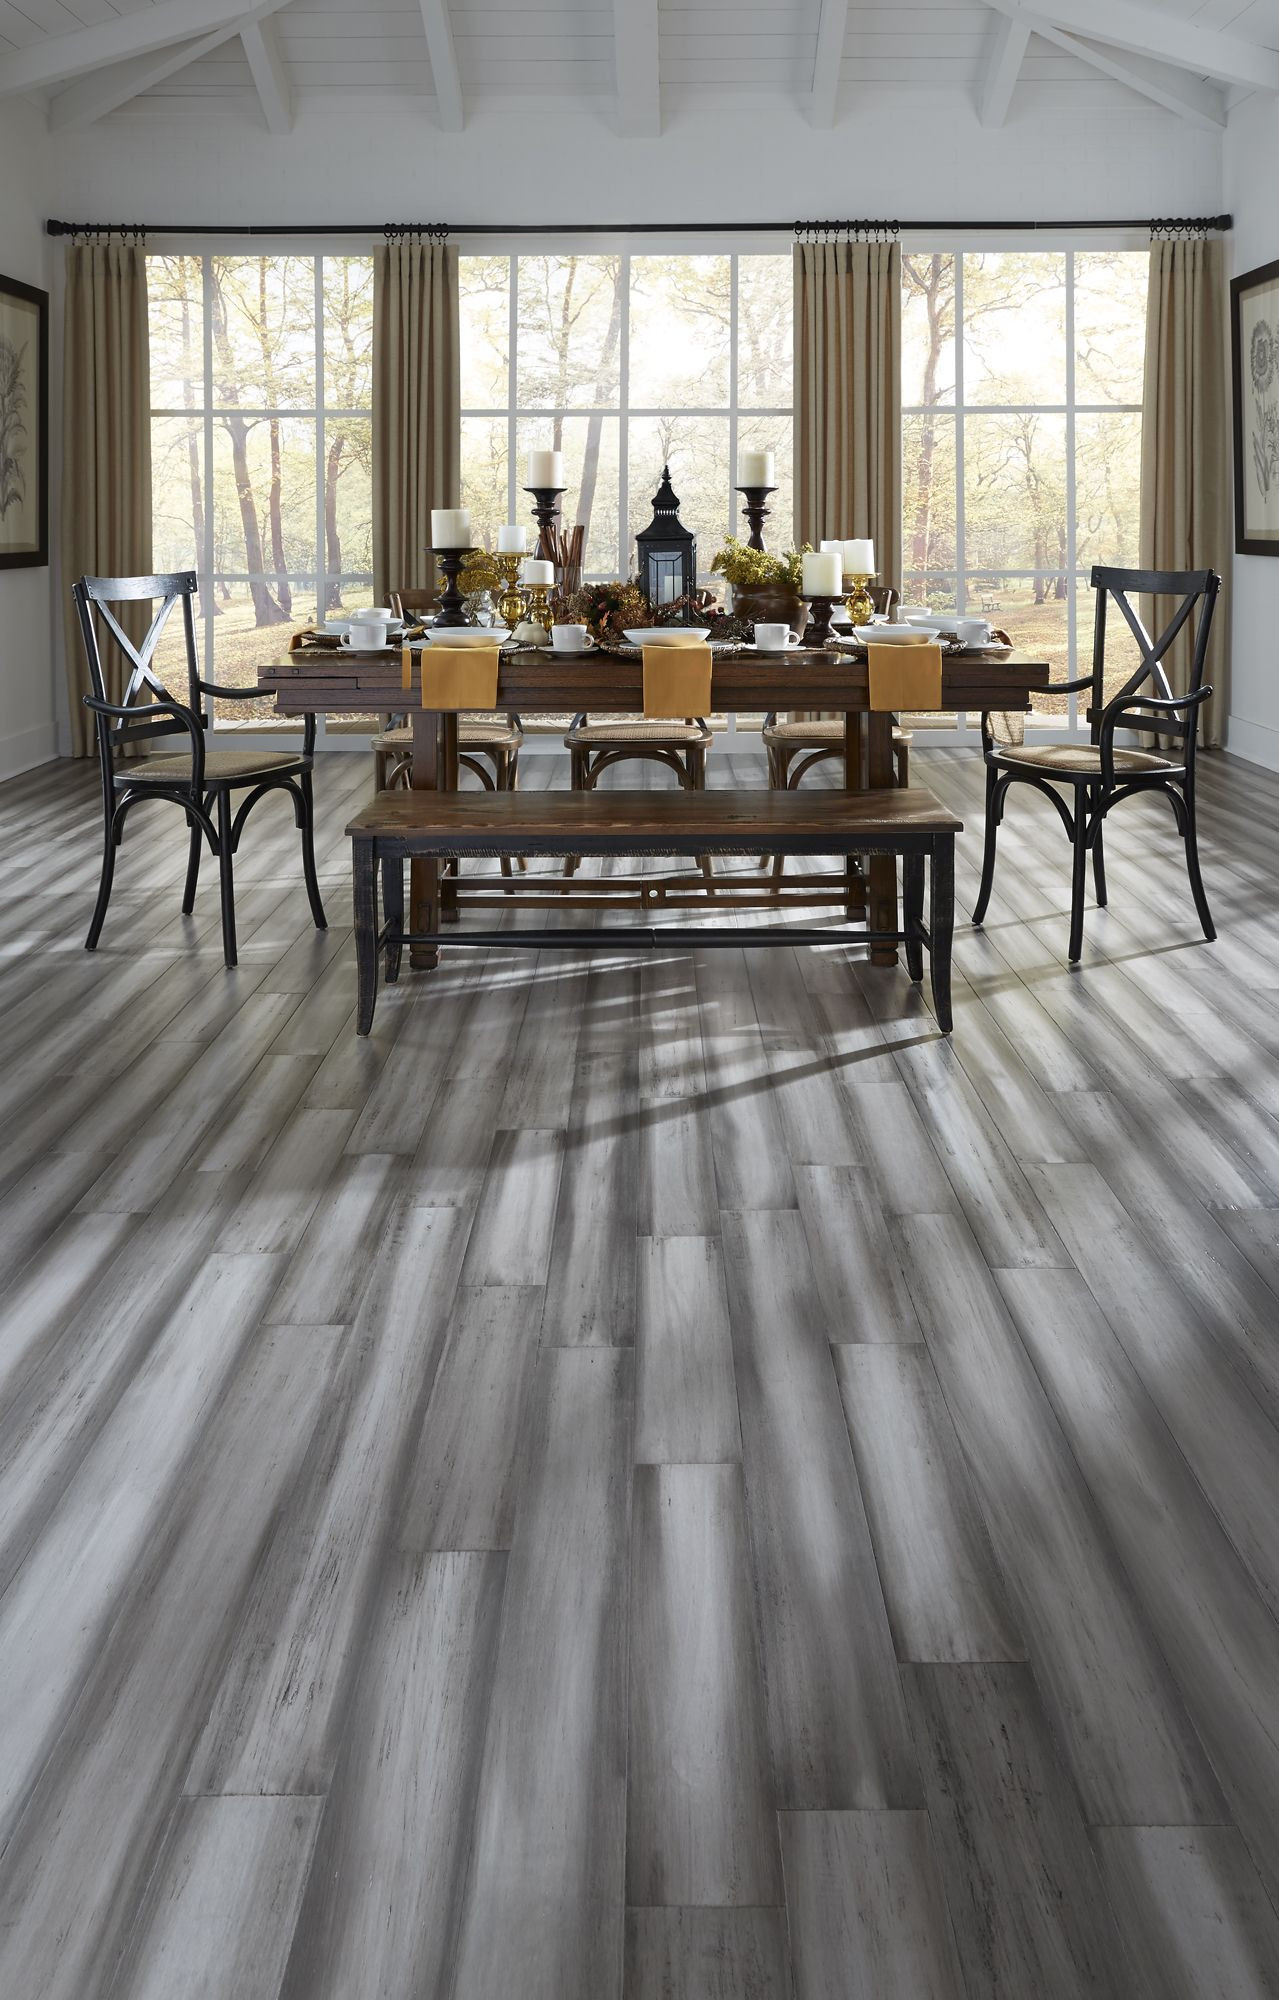 butterscotch oak hardwood flooring lowes of modern design and rustic texture pair perfectly with the stately with regard to modern design and rustic texture pair perfectly with the stately blend of light and dark gray shades to offer instant charm in silver stone distressed